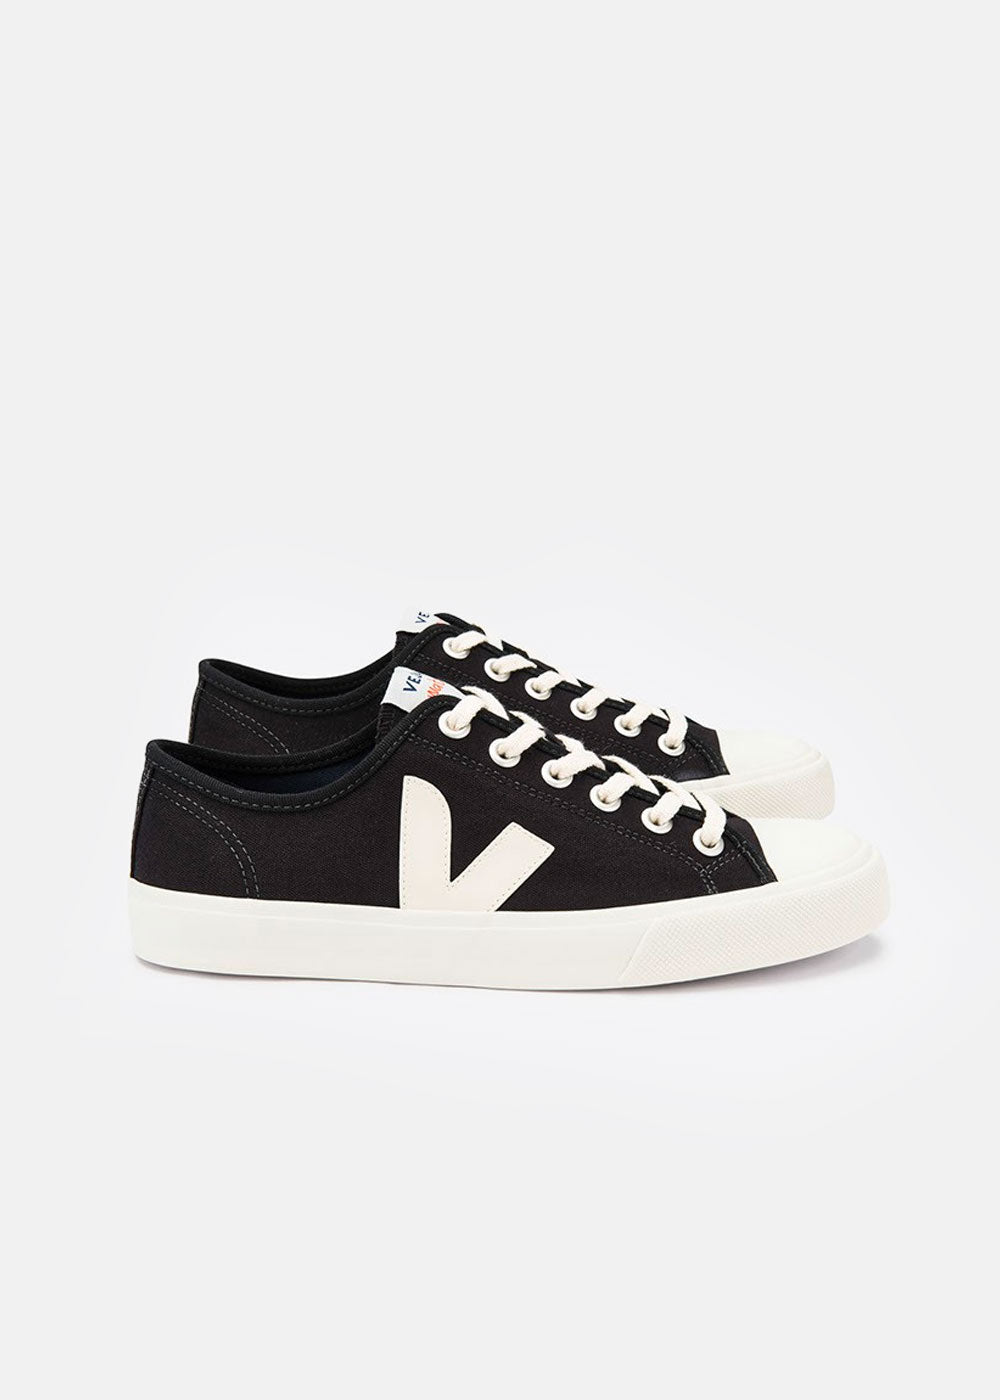 Veja Black Pierre Wata Canvas Sneaker — Shop sustainable fashion and slow fashion at New Classics Studios